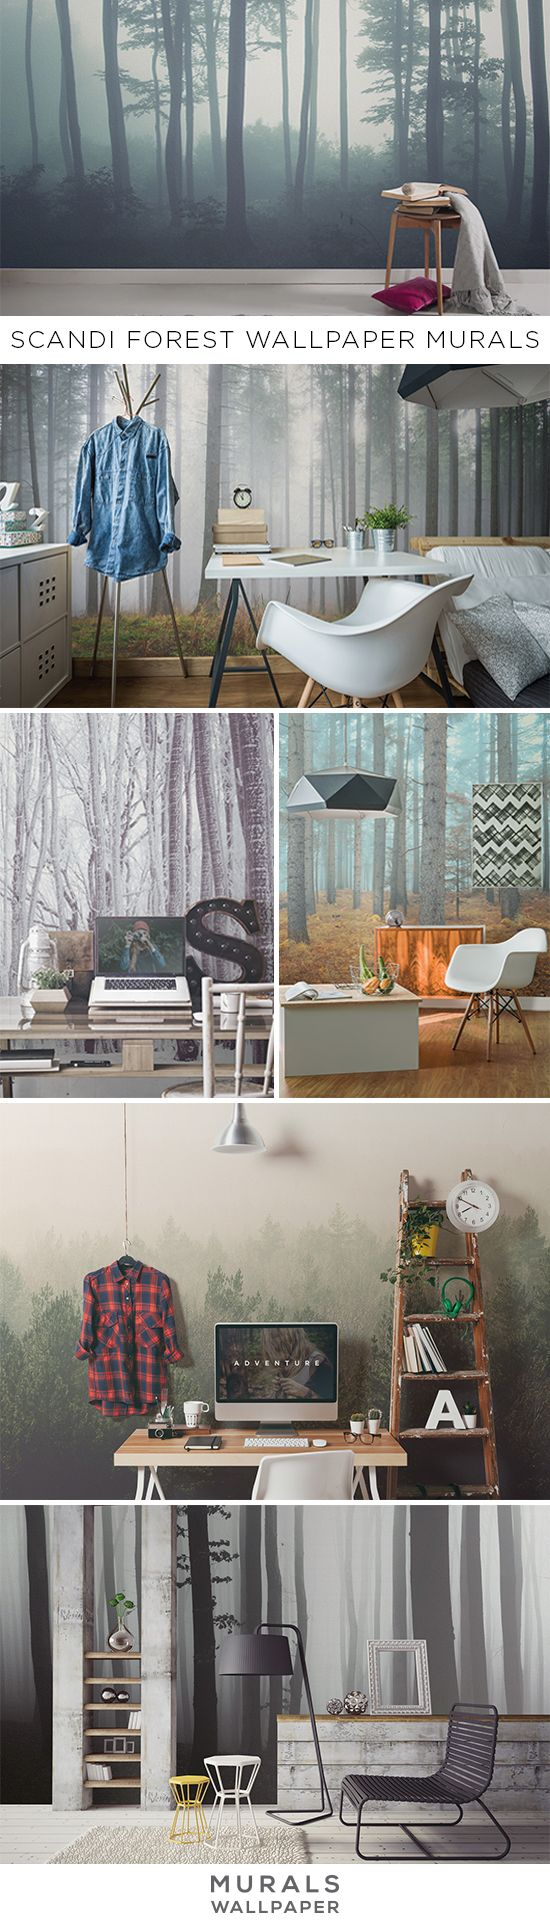 Achieve Scandi With These Dreamy Forest Wallpaper Murals